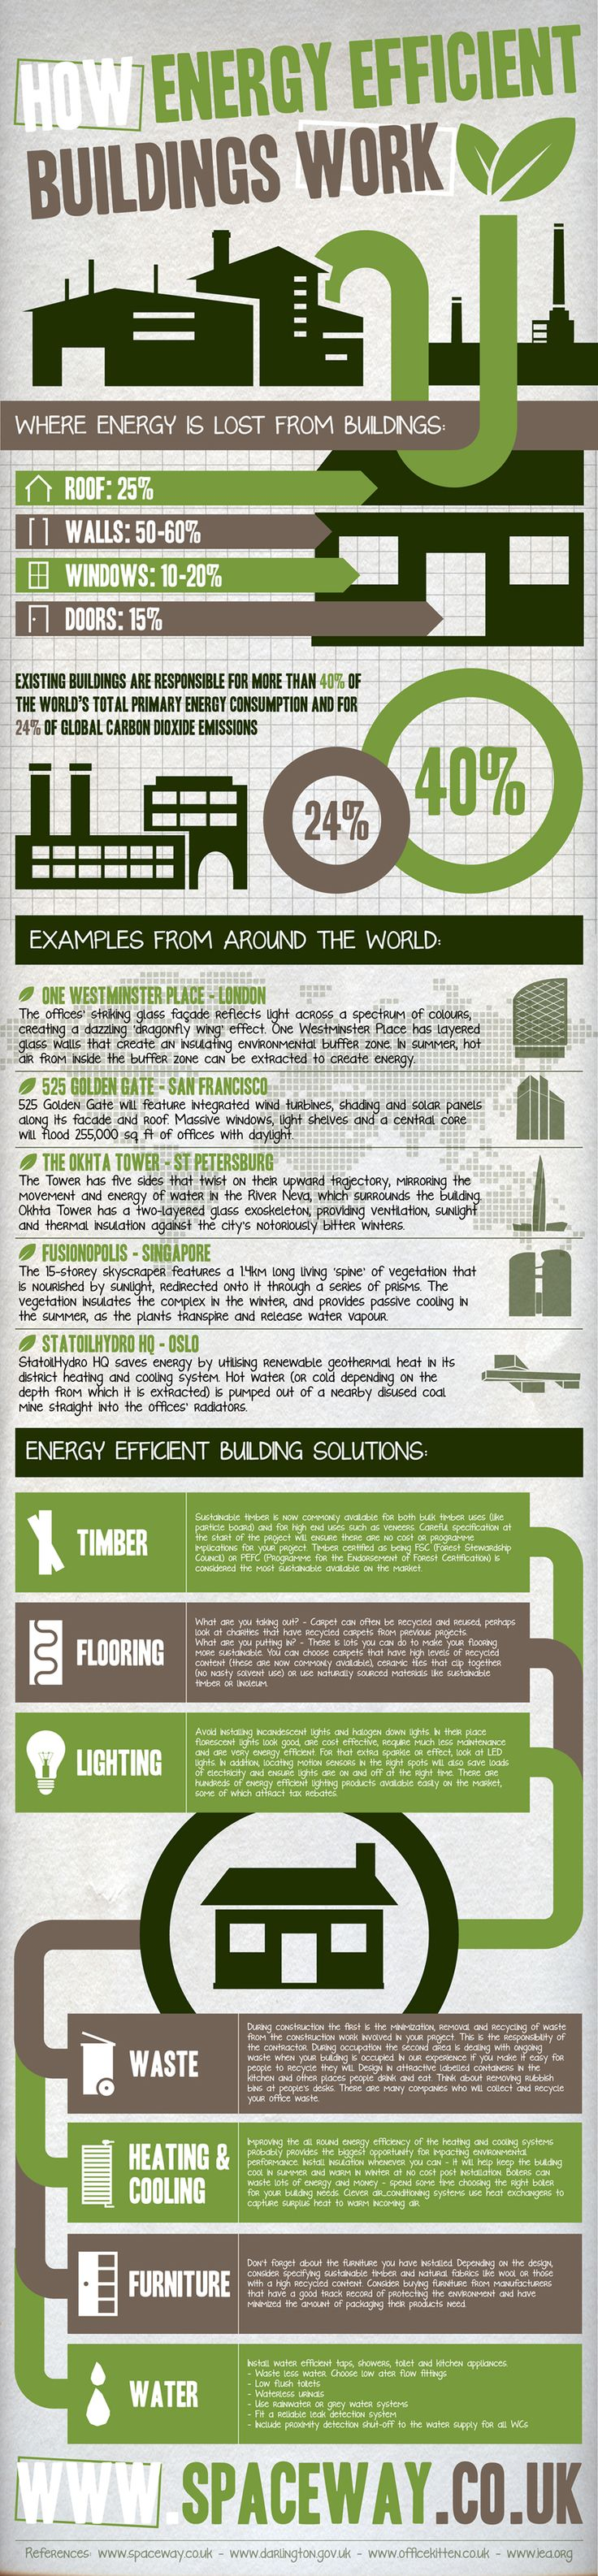 From San Francisco all the way to Singapore, Spaceway show you the best and some of the most inspiring ways to make your building energy efficient.: Green Building, Infographic Eco Green, Eco Infographic, Infografia Infographic, Energy Efficiency Infographic, Building Work, Work Infographic, Energy Efficiency Building, Energy Efficiency